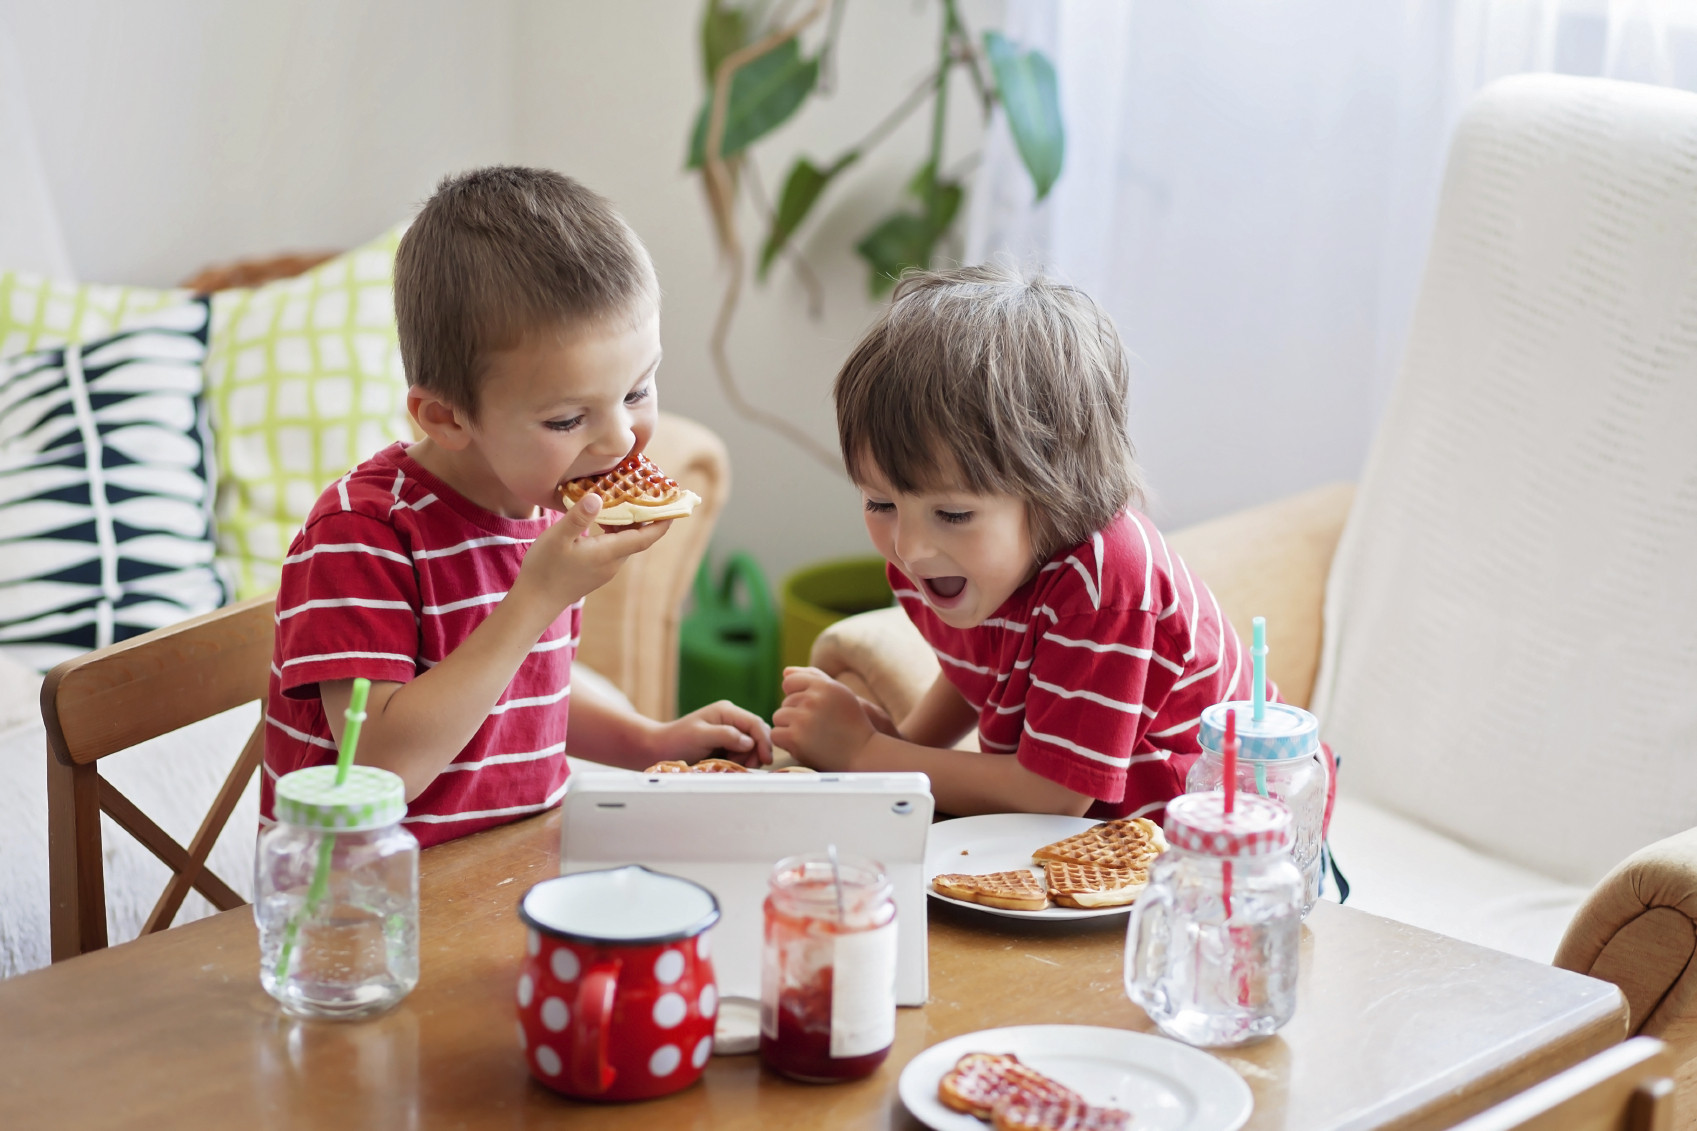 Kids Eating Breakfast  Why Do Students Need To Eat Breakfast Before School